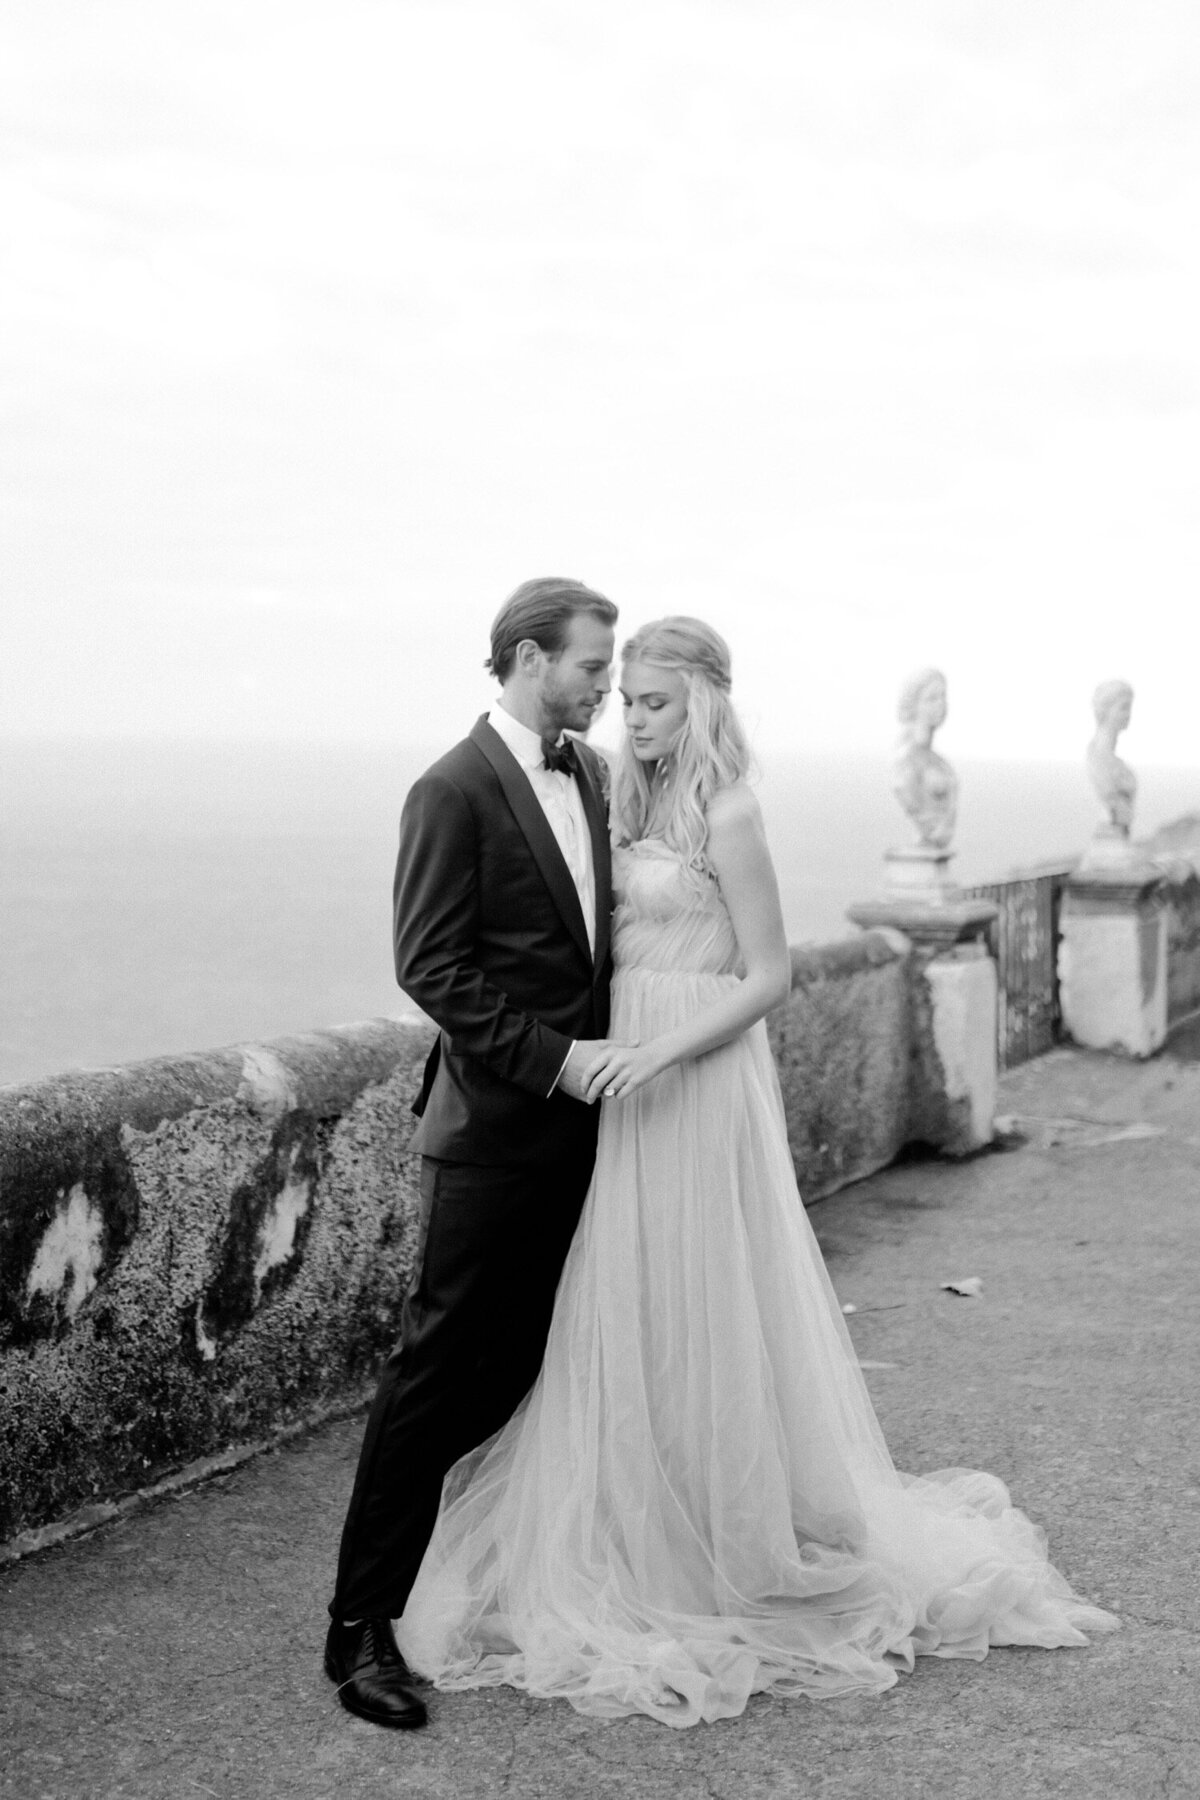 068_Villa_Cimbrone_Amalfi_Coast_Luxury_Wedding_Photographer (68 von 101)_Flora and Grace is a luxury wedding photographer at the Amalfi Coast. Discover their elegant and stylish photography work at the Villa Cimbrone.